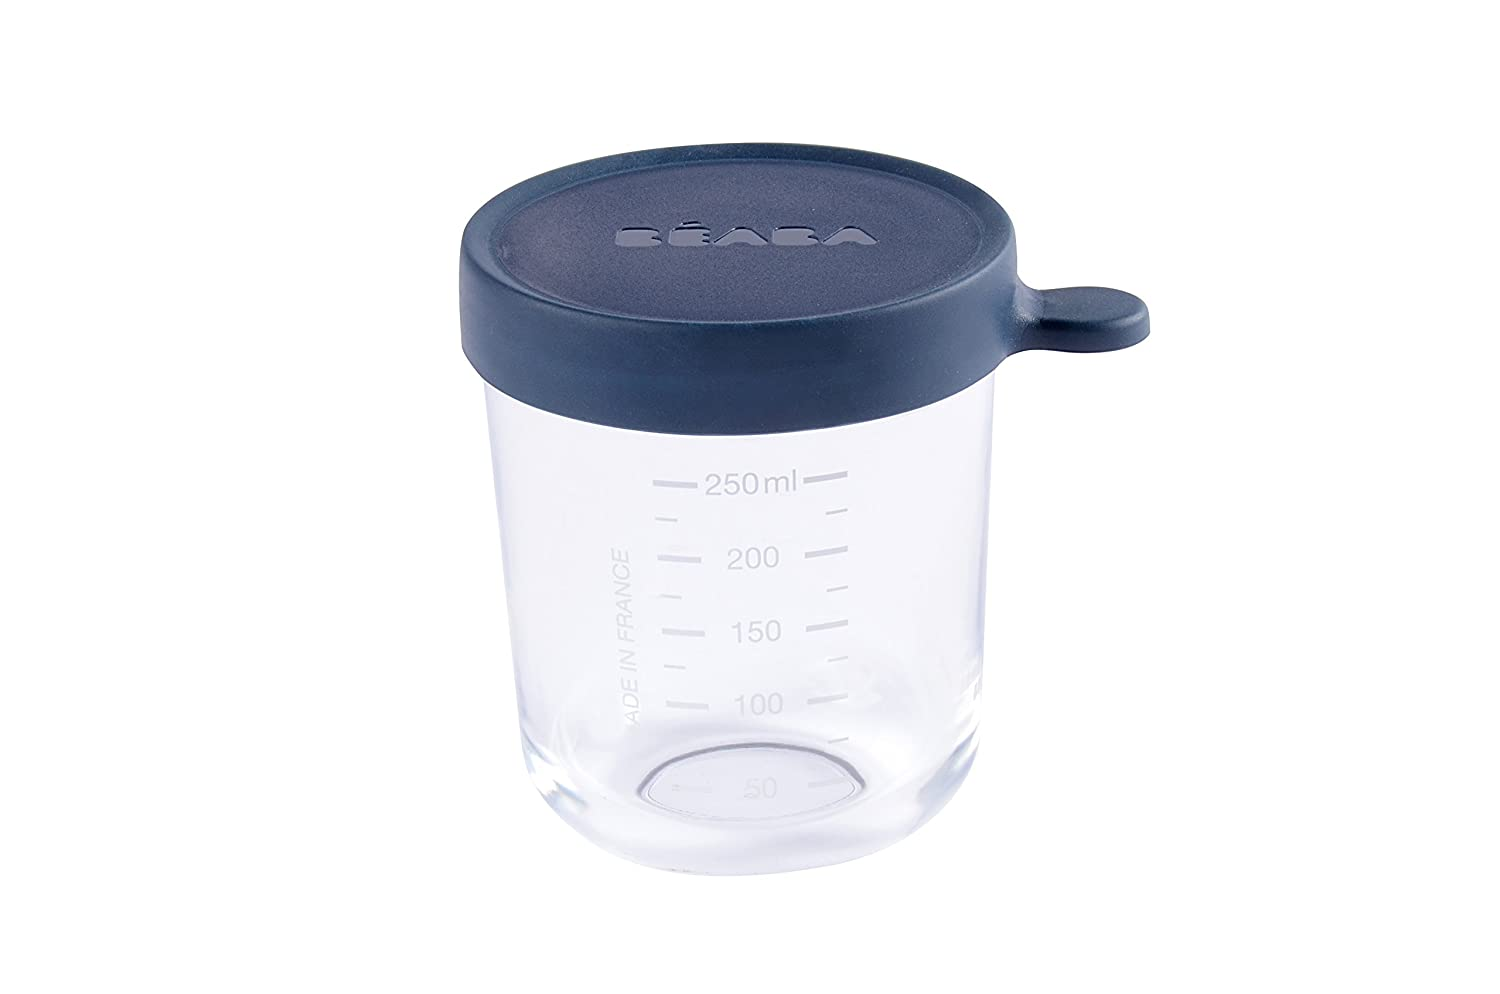 BEABA Glass and Silicone Baby Food Container with Airtight Lid, 8 oz Midnight